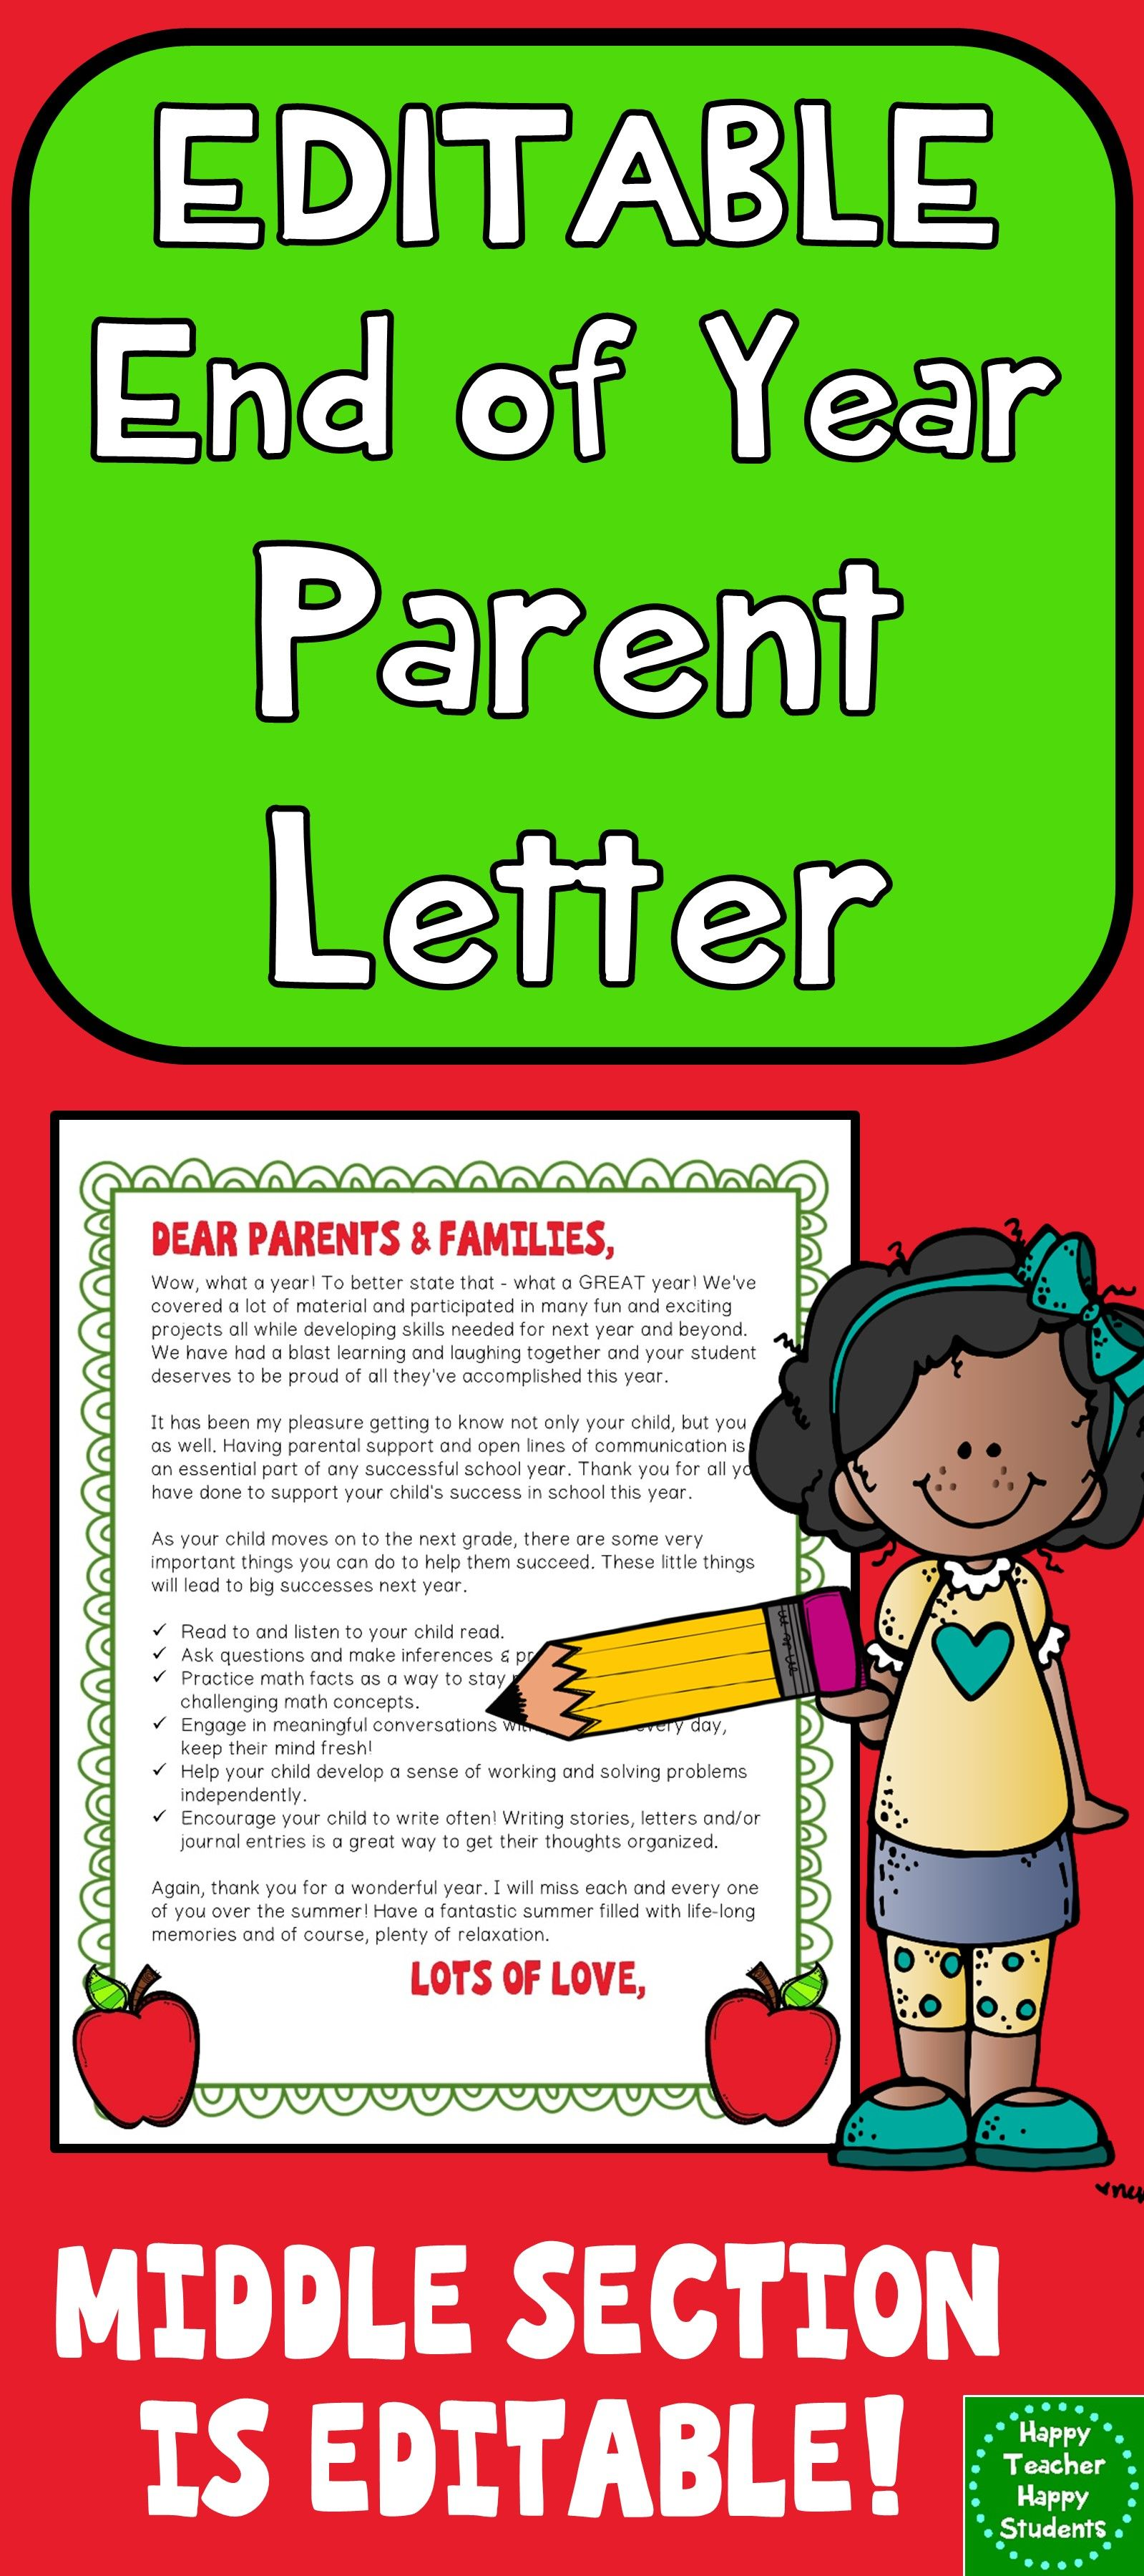 Editable End Of Year Letter For Parents Color Amp Black